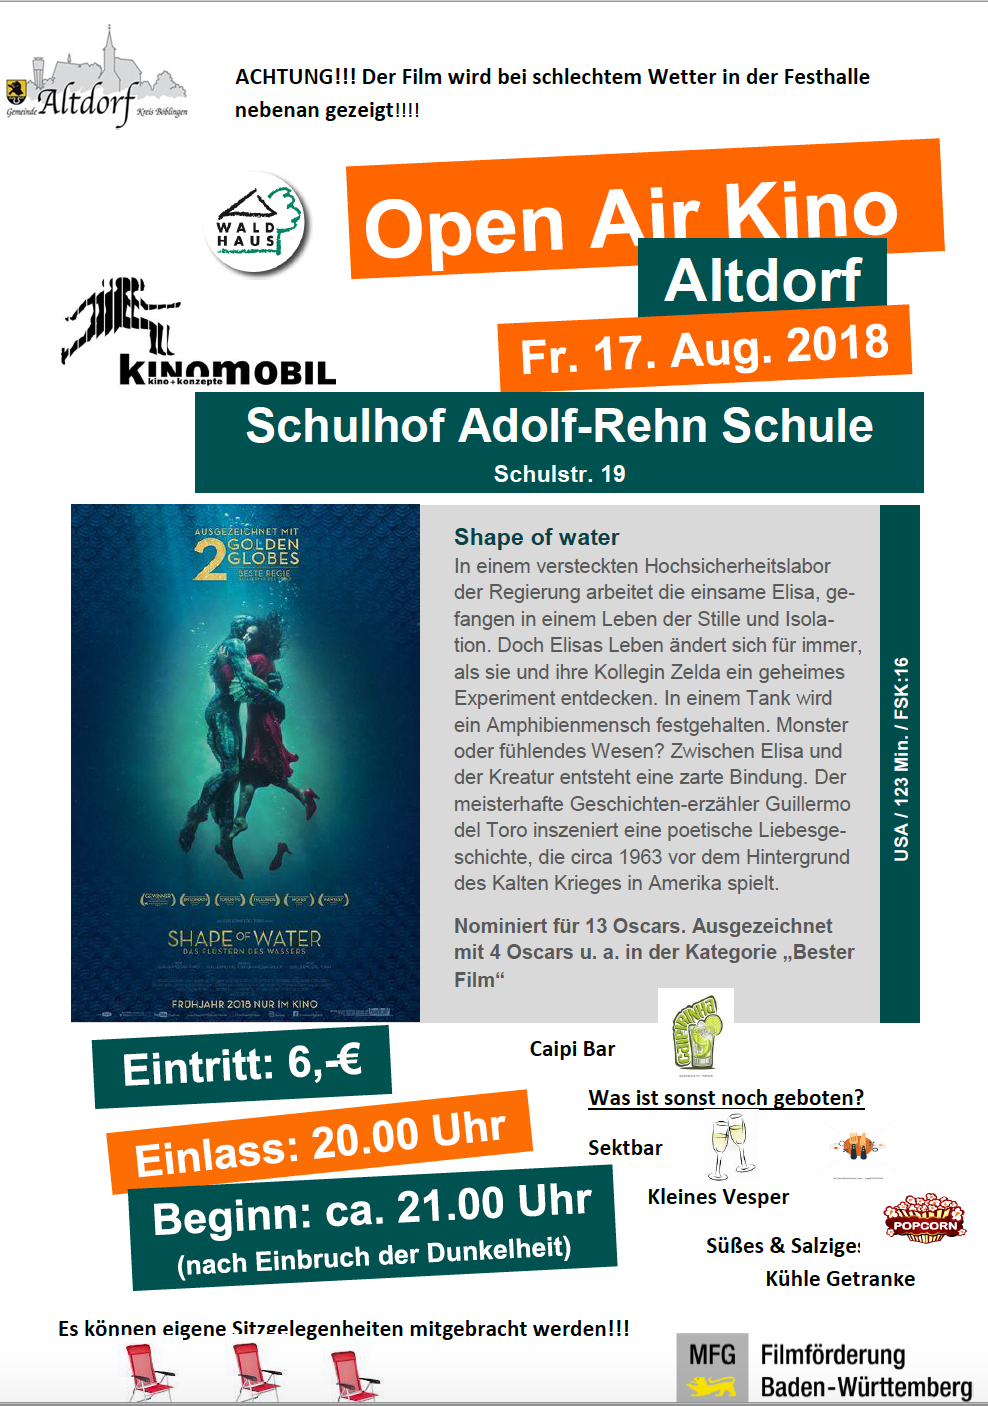 Open Air Kino in Altdorf